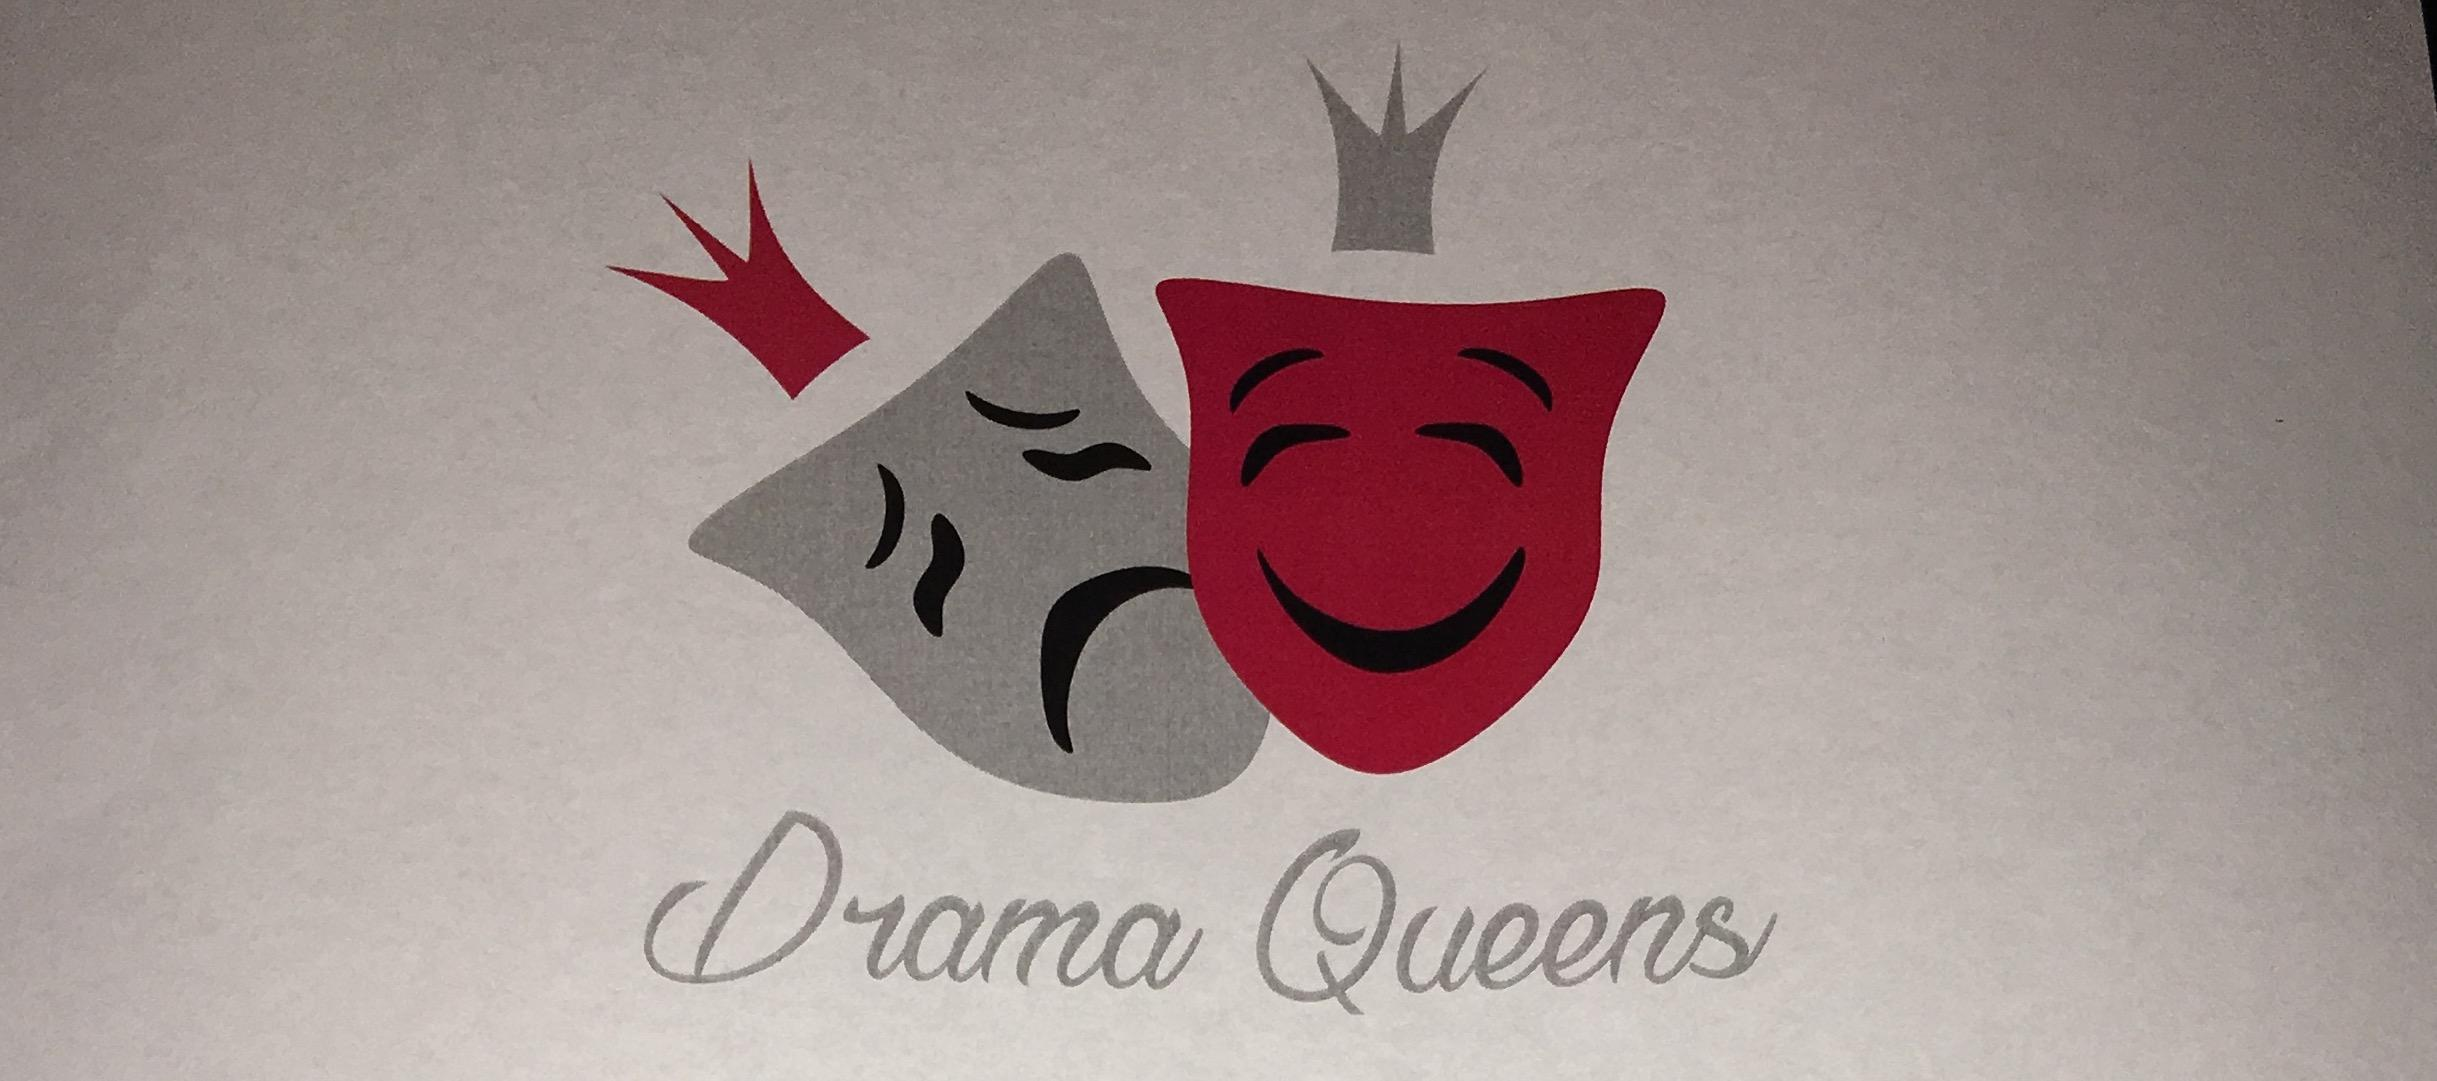 The advanced theatre class, better known as the Drama Queens, put on performances for the whole school during lunch. Their most recent showcase consisted of two monologues, two comedic scenes, a dramatic scene and a song. Photo by: Nelly Rouzroch '18.